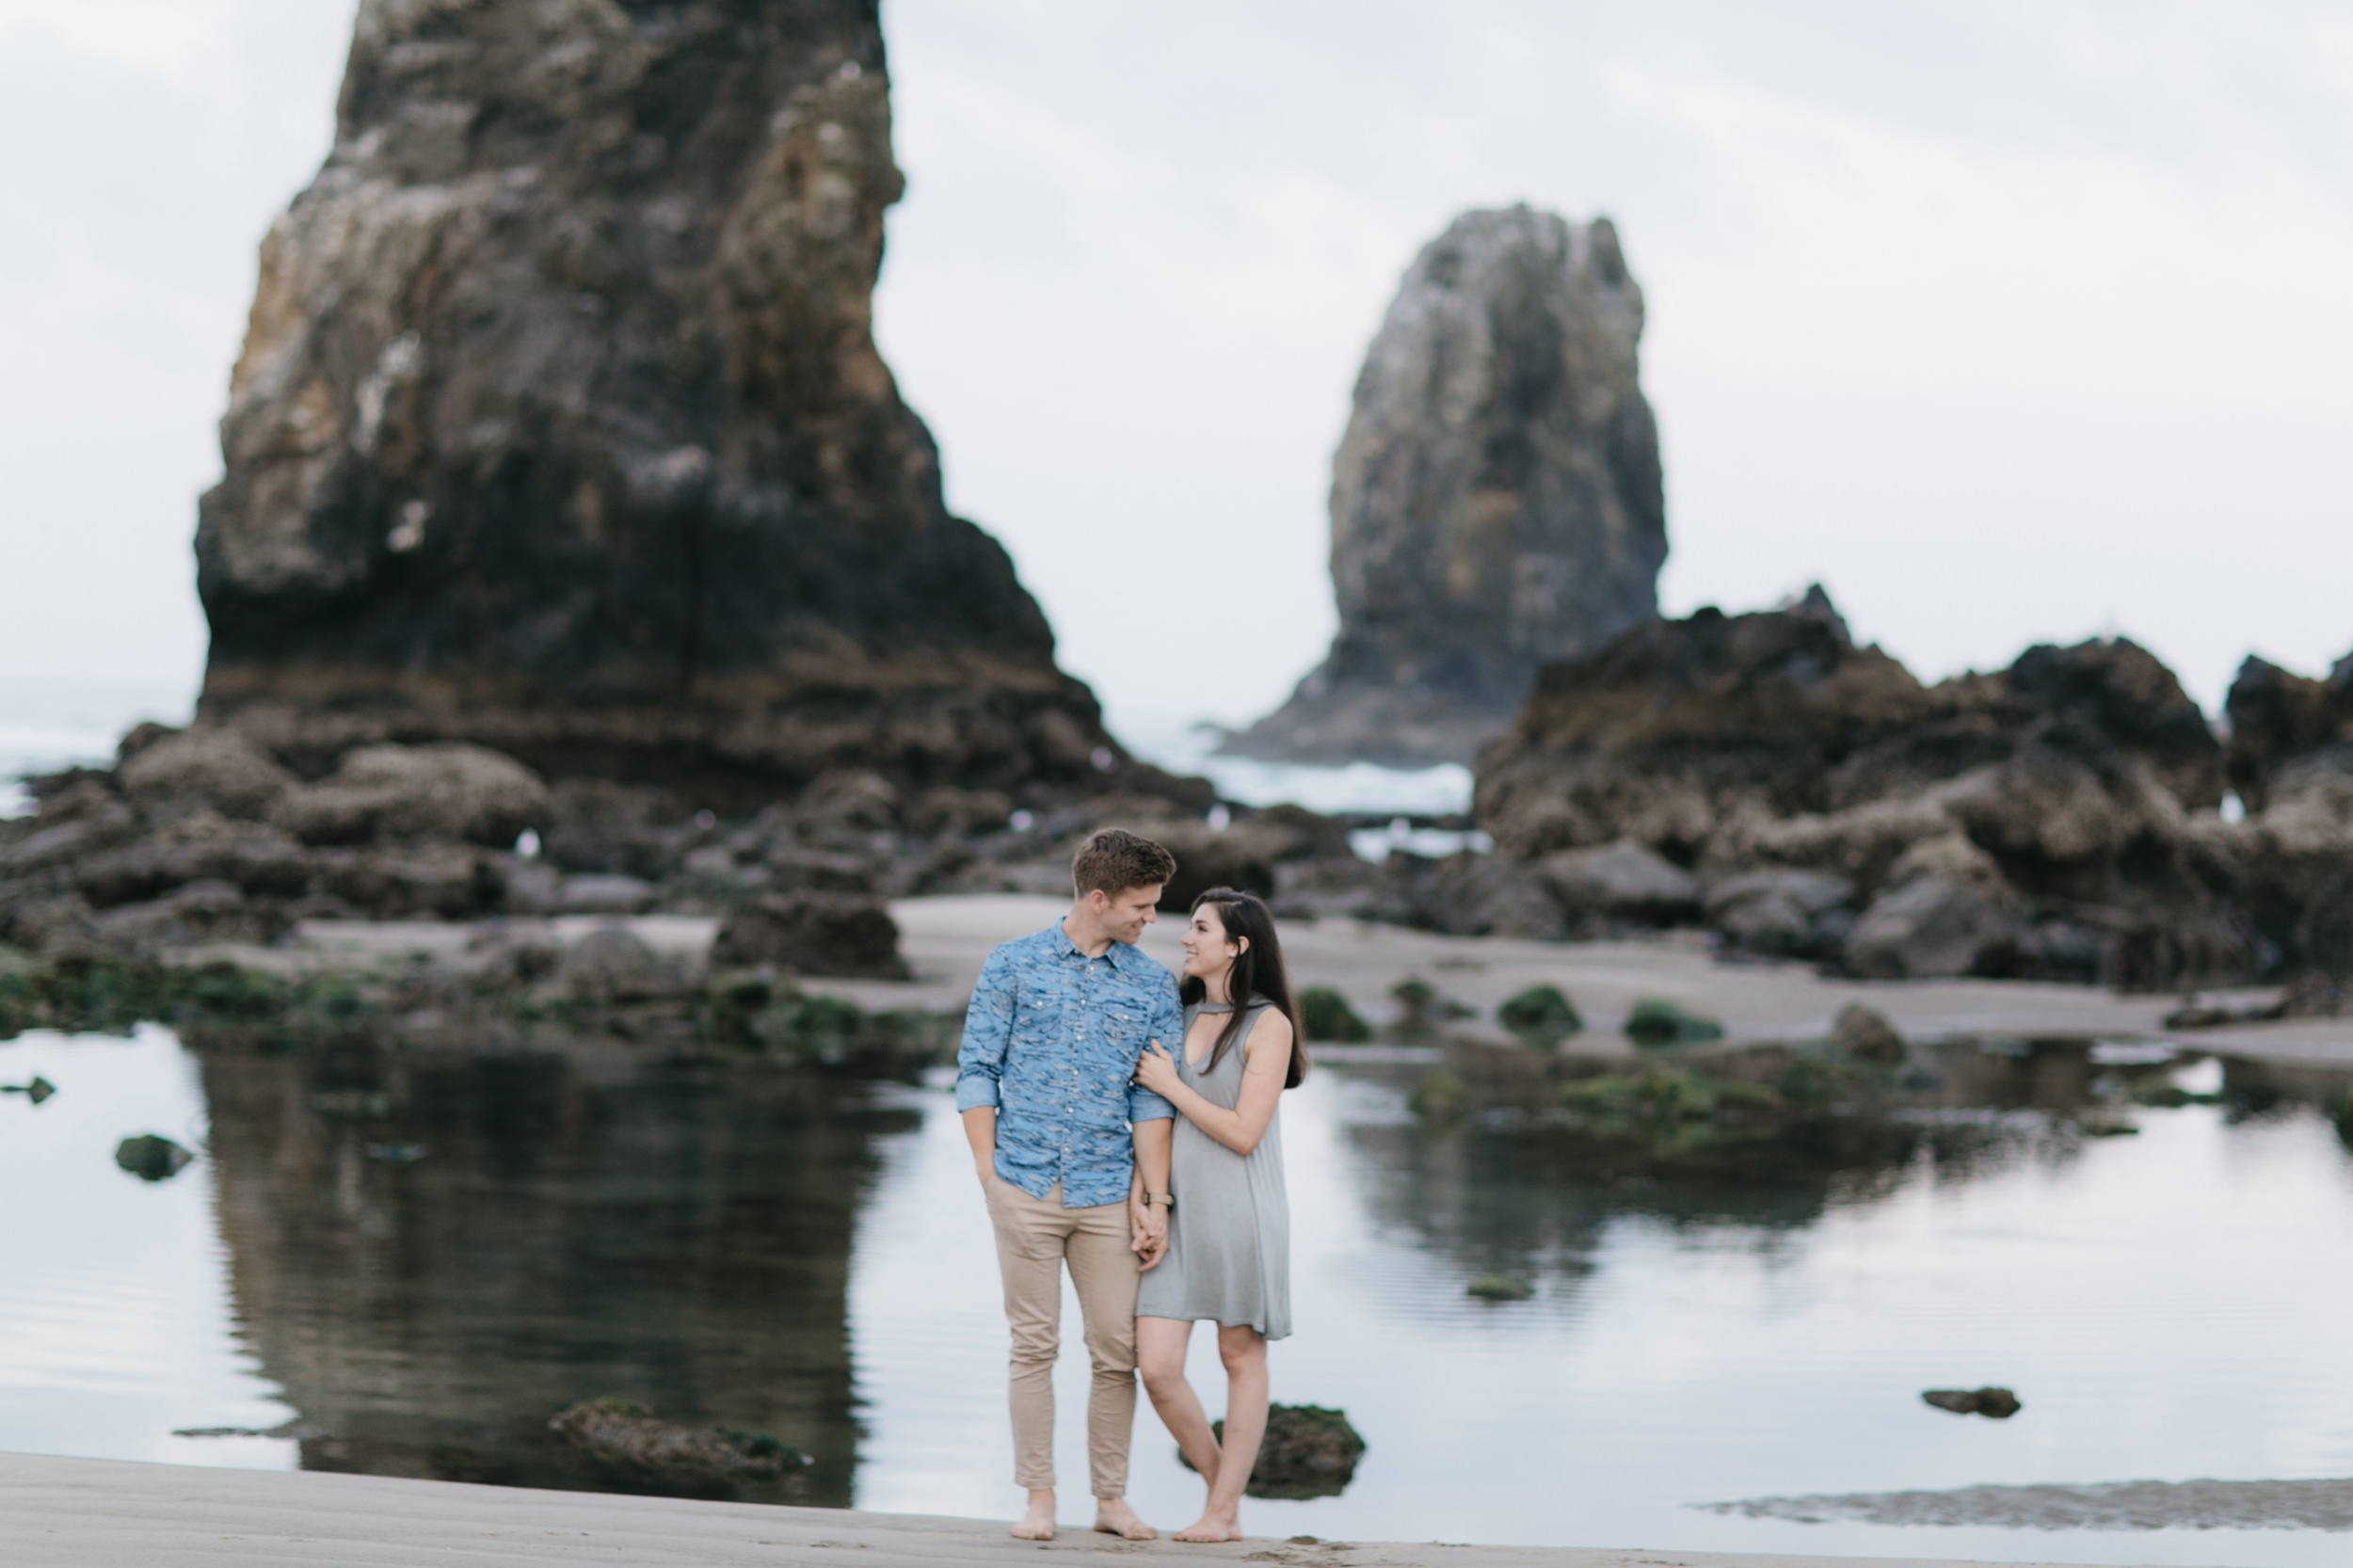 Cannon-Beach-Adventure-Engagement-Photography-Oregon-Destination-Elopement-Photographer4.JPG